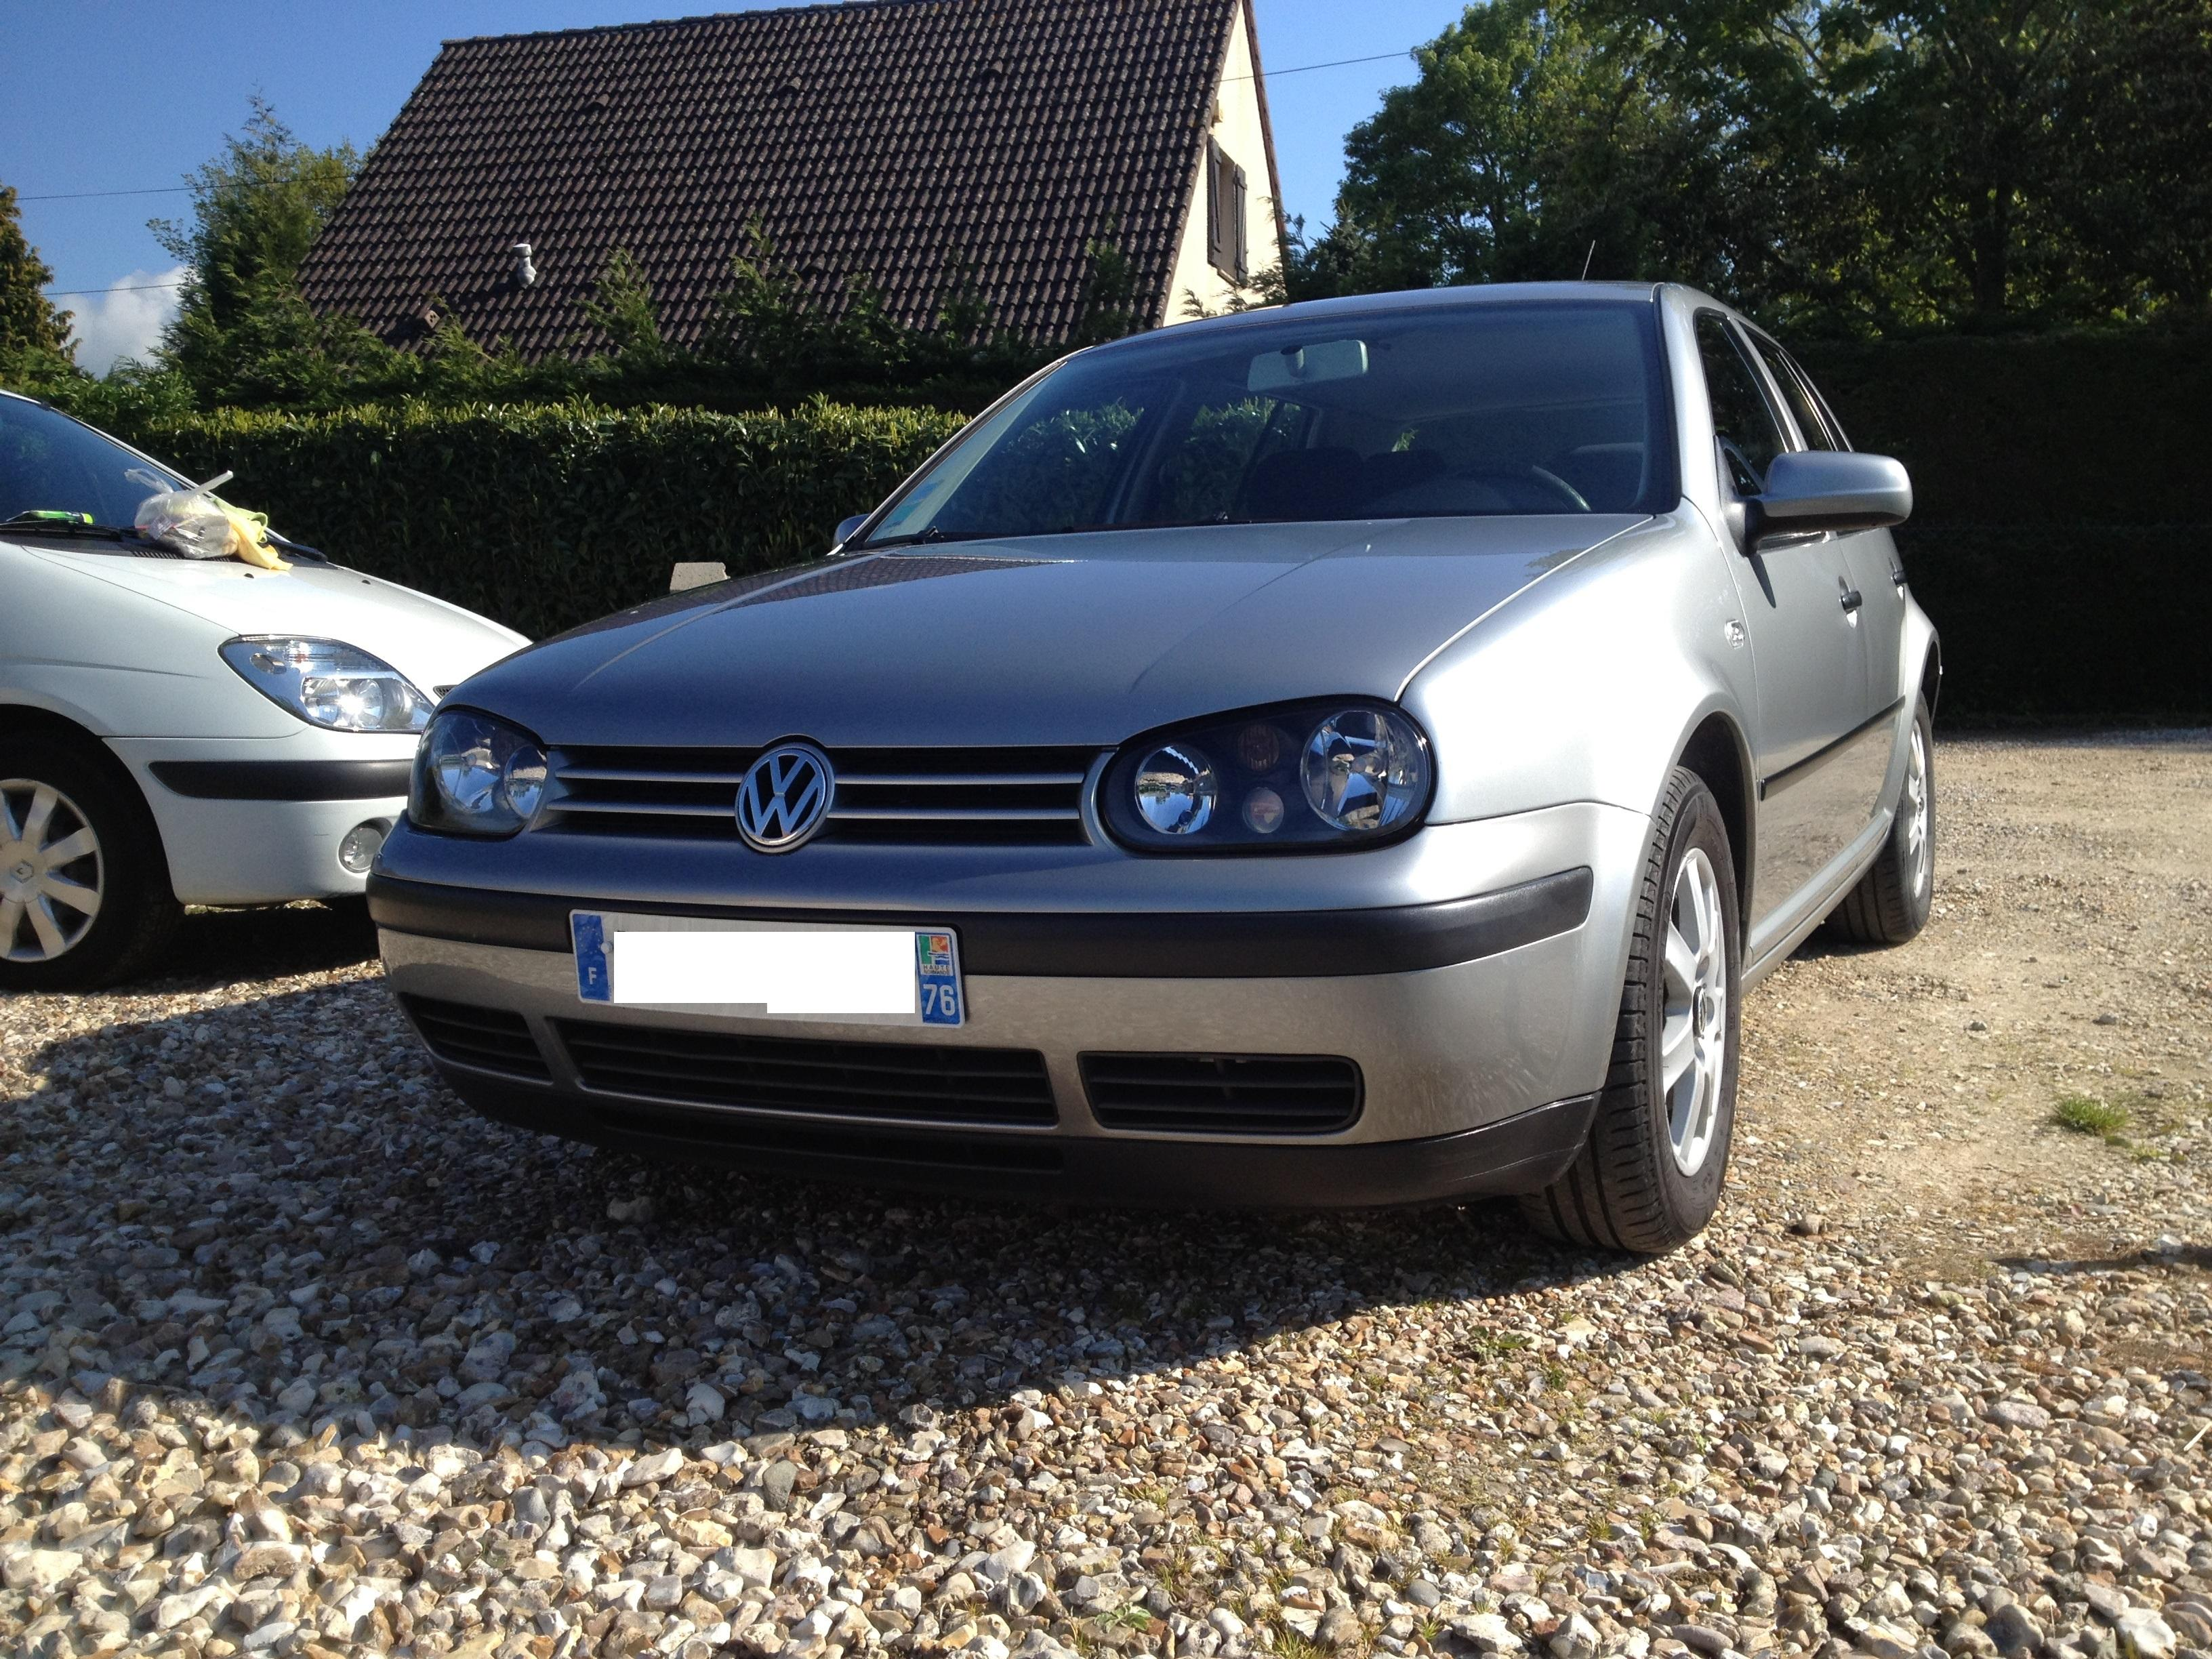 golf 4 tdi 90 briice shootings et nouvels modifs garage des golf iv tdi 90 page 16 forum. Black Bedroom Furniture Sets. Home Design Ideas